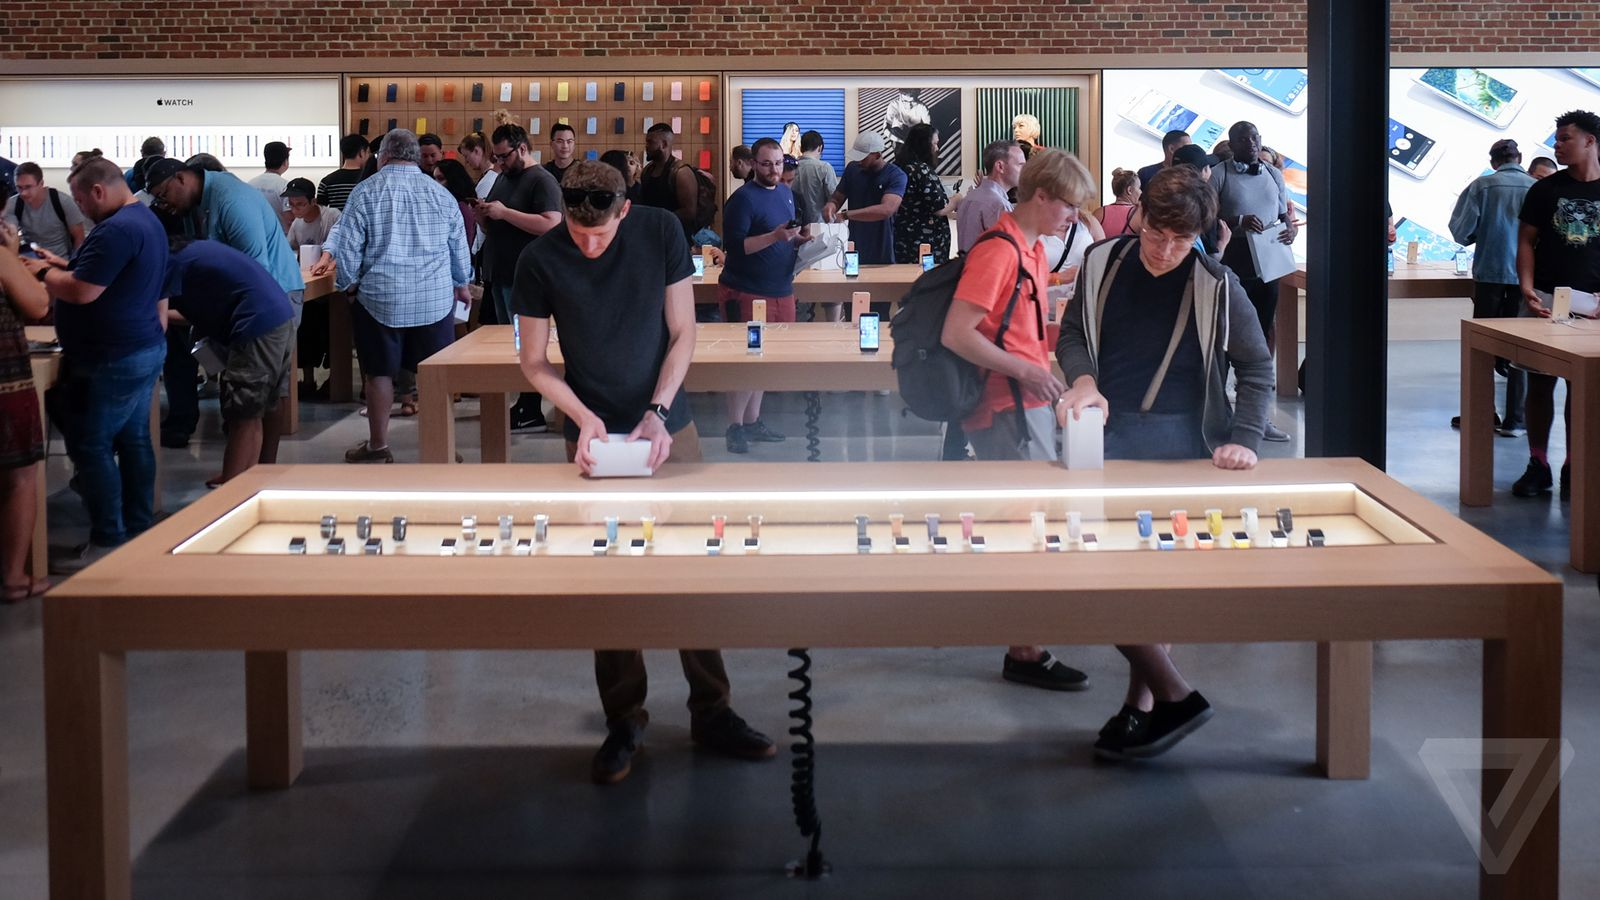 The Apple Store is now just called Apple